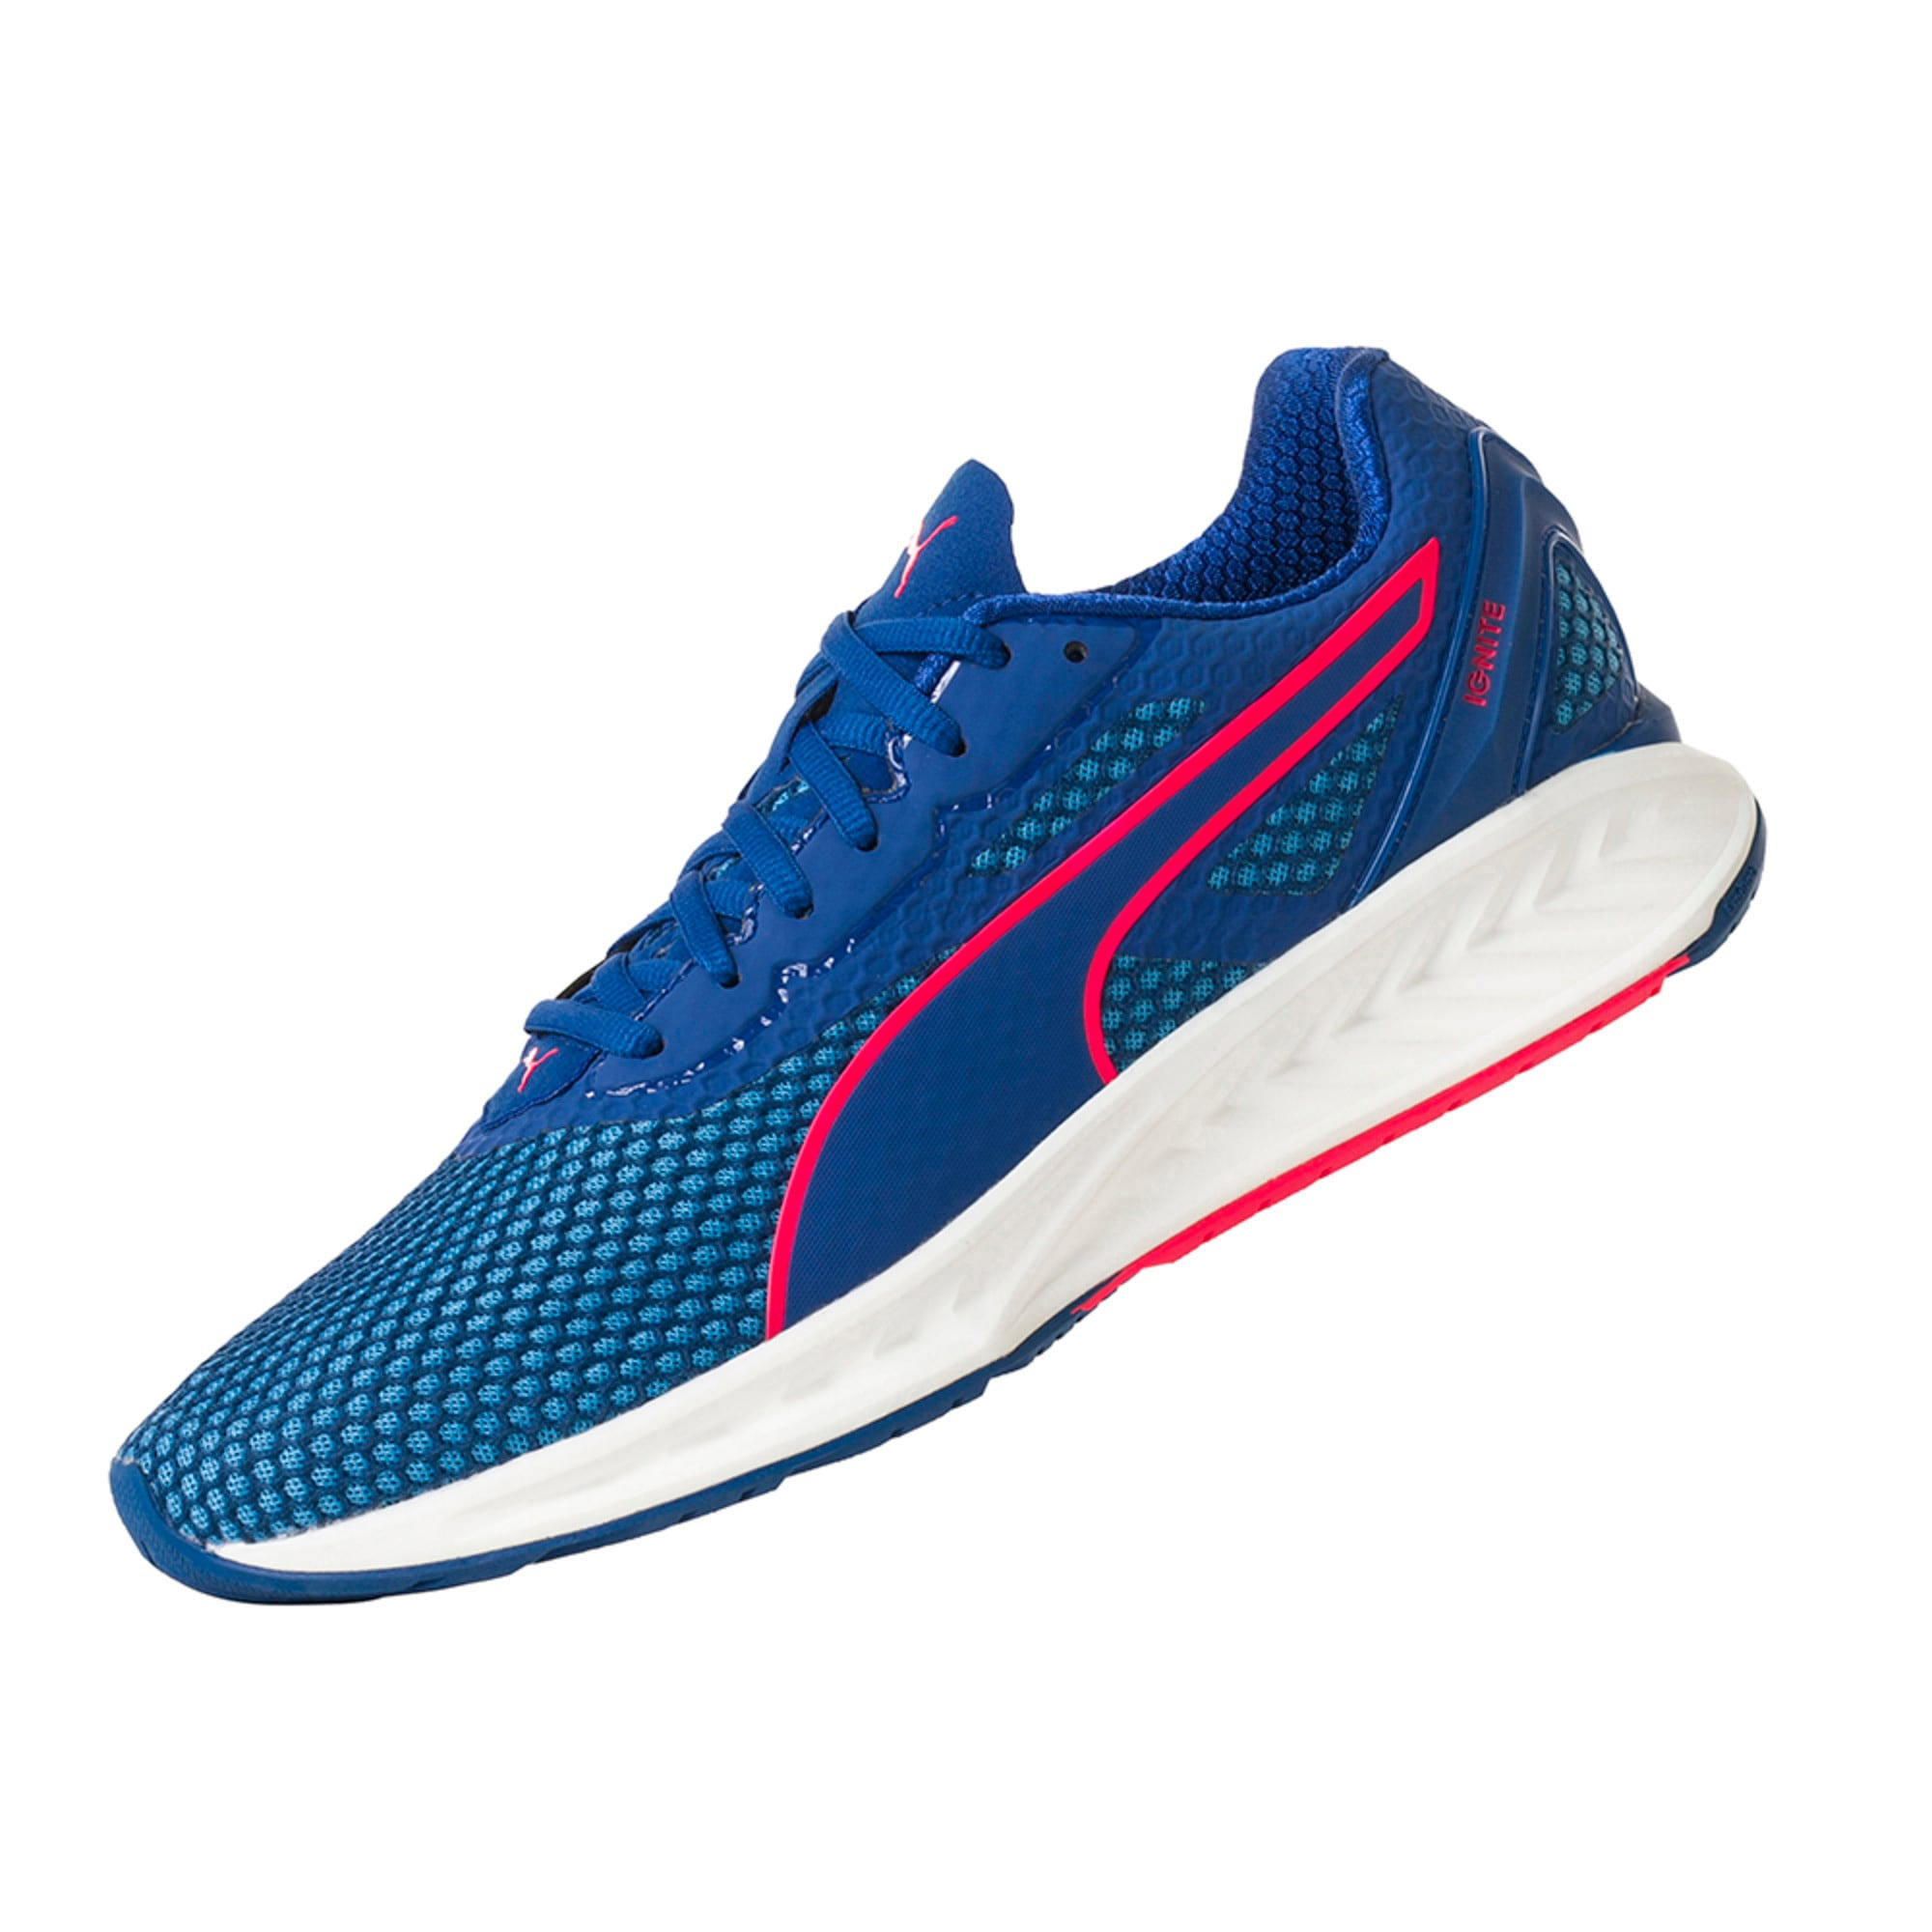 Thumbnail 1 of IGNITE 3 Men's Running Shoes, TRUEBLUE-BLUEDANUBE-Plasma, medium-IND